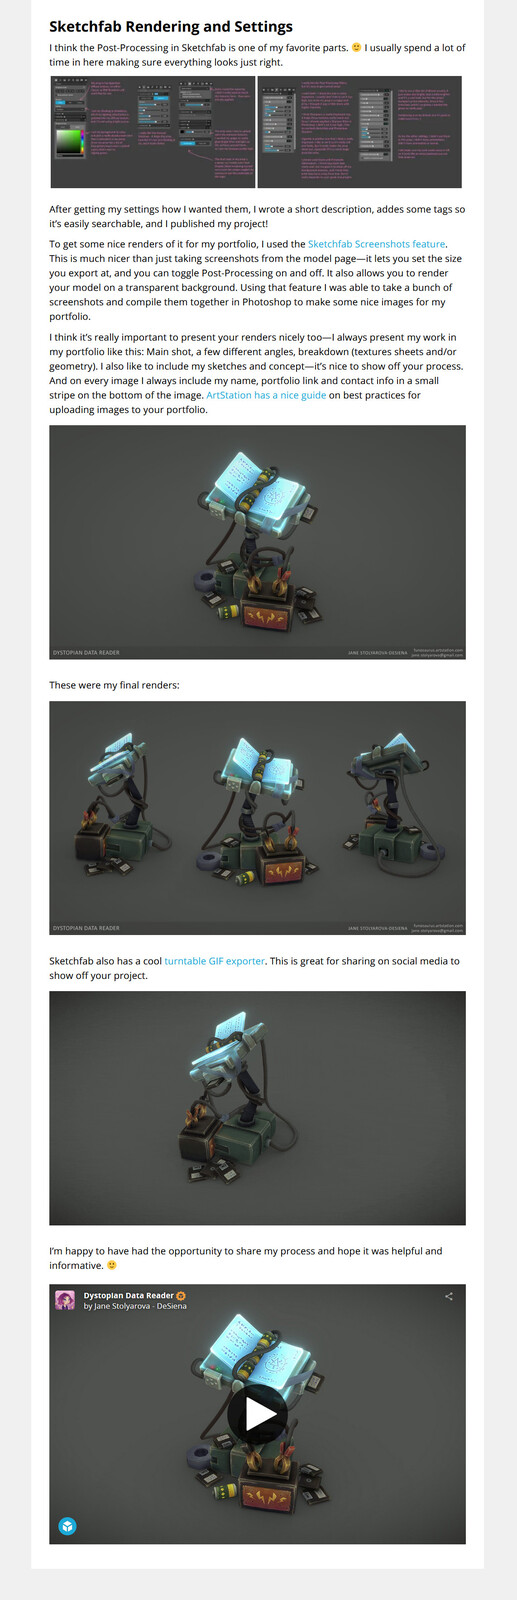 Check out the full article with links and gifs: https://sketchfab.com/blogs/community/art-spotlight-dystopian-data-reader/